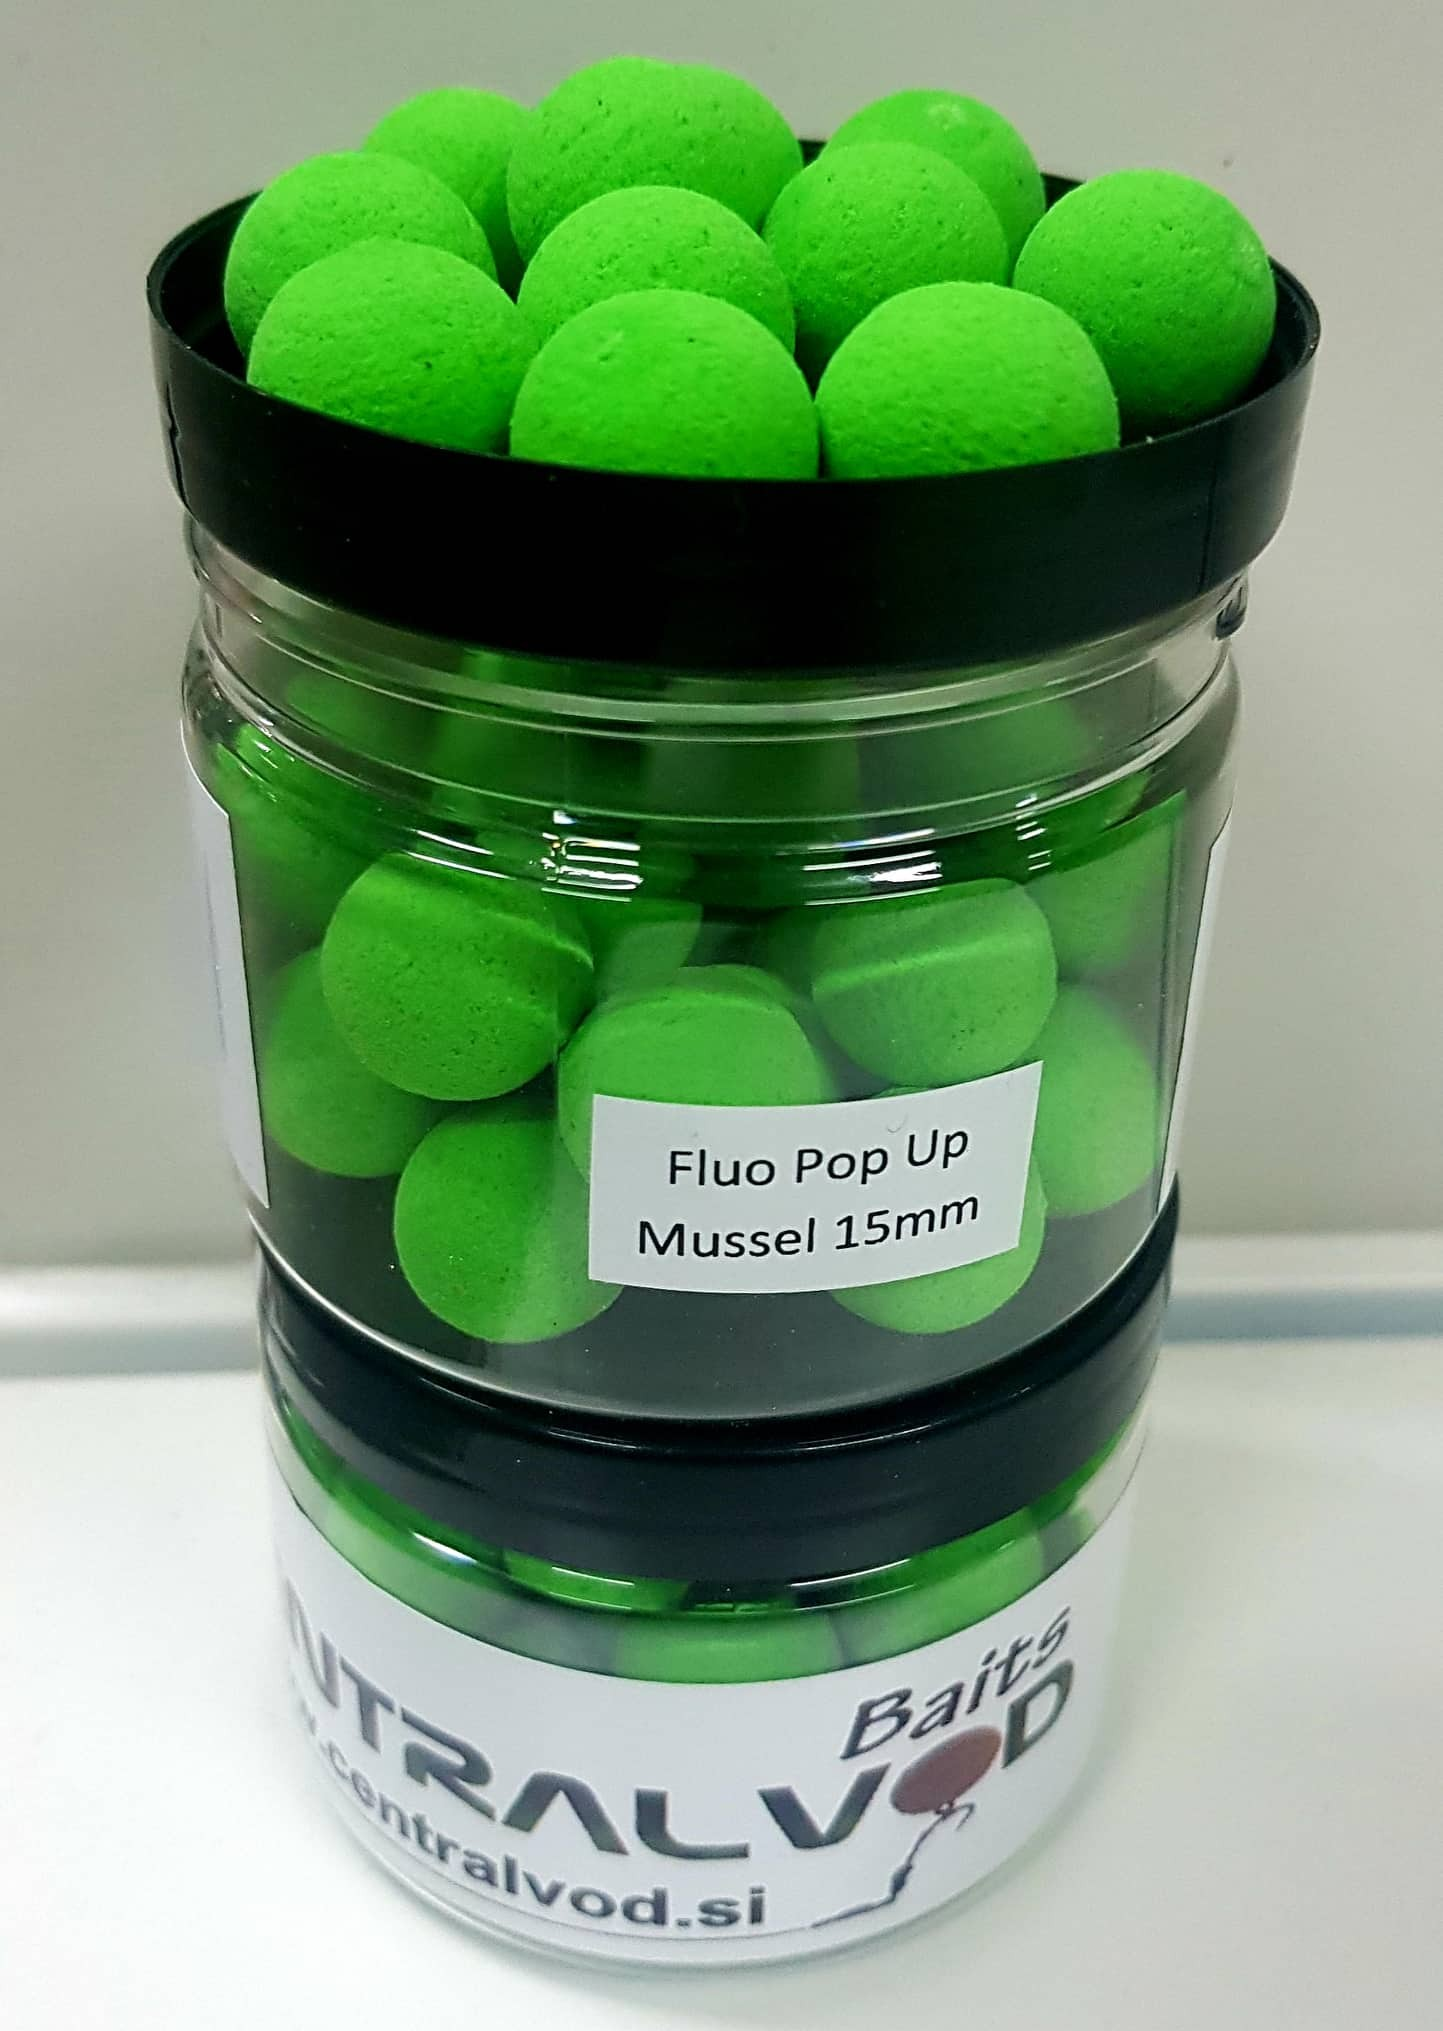 Fluo Pop Up Centralvod Baits Mussel 15mm 60g